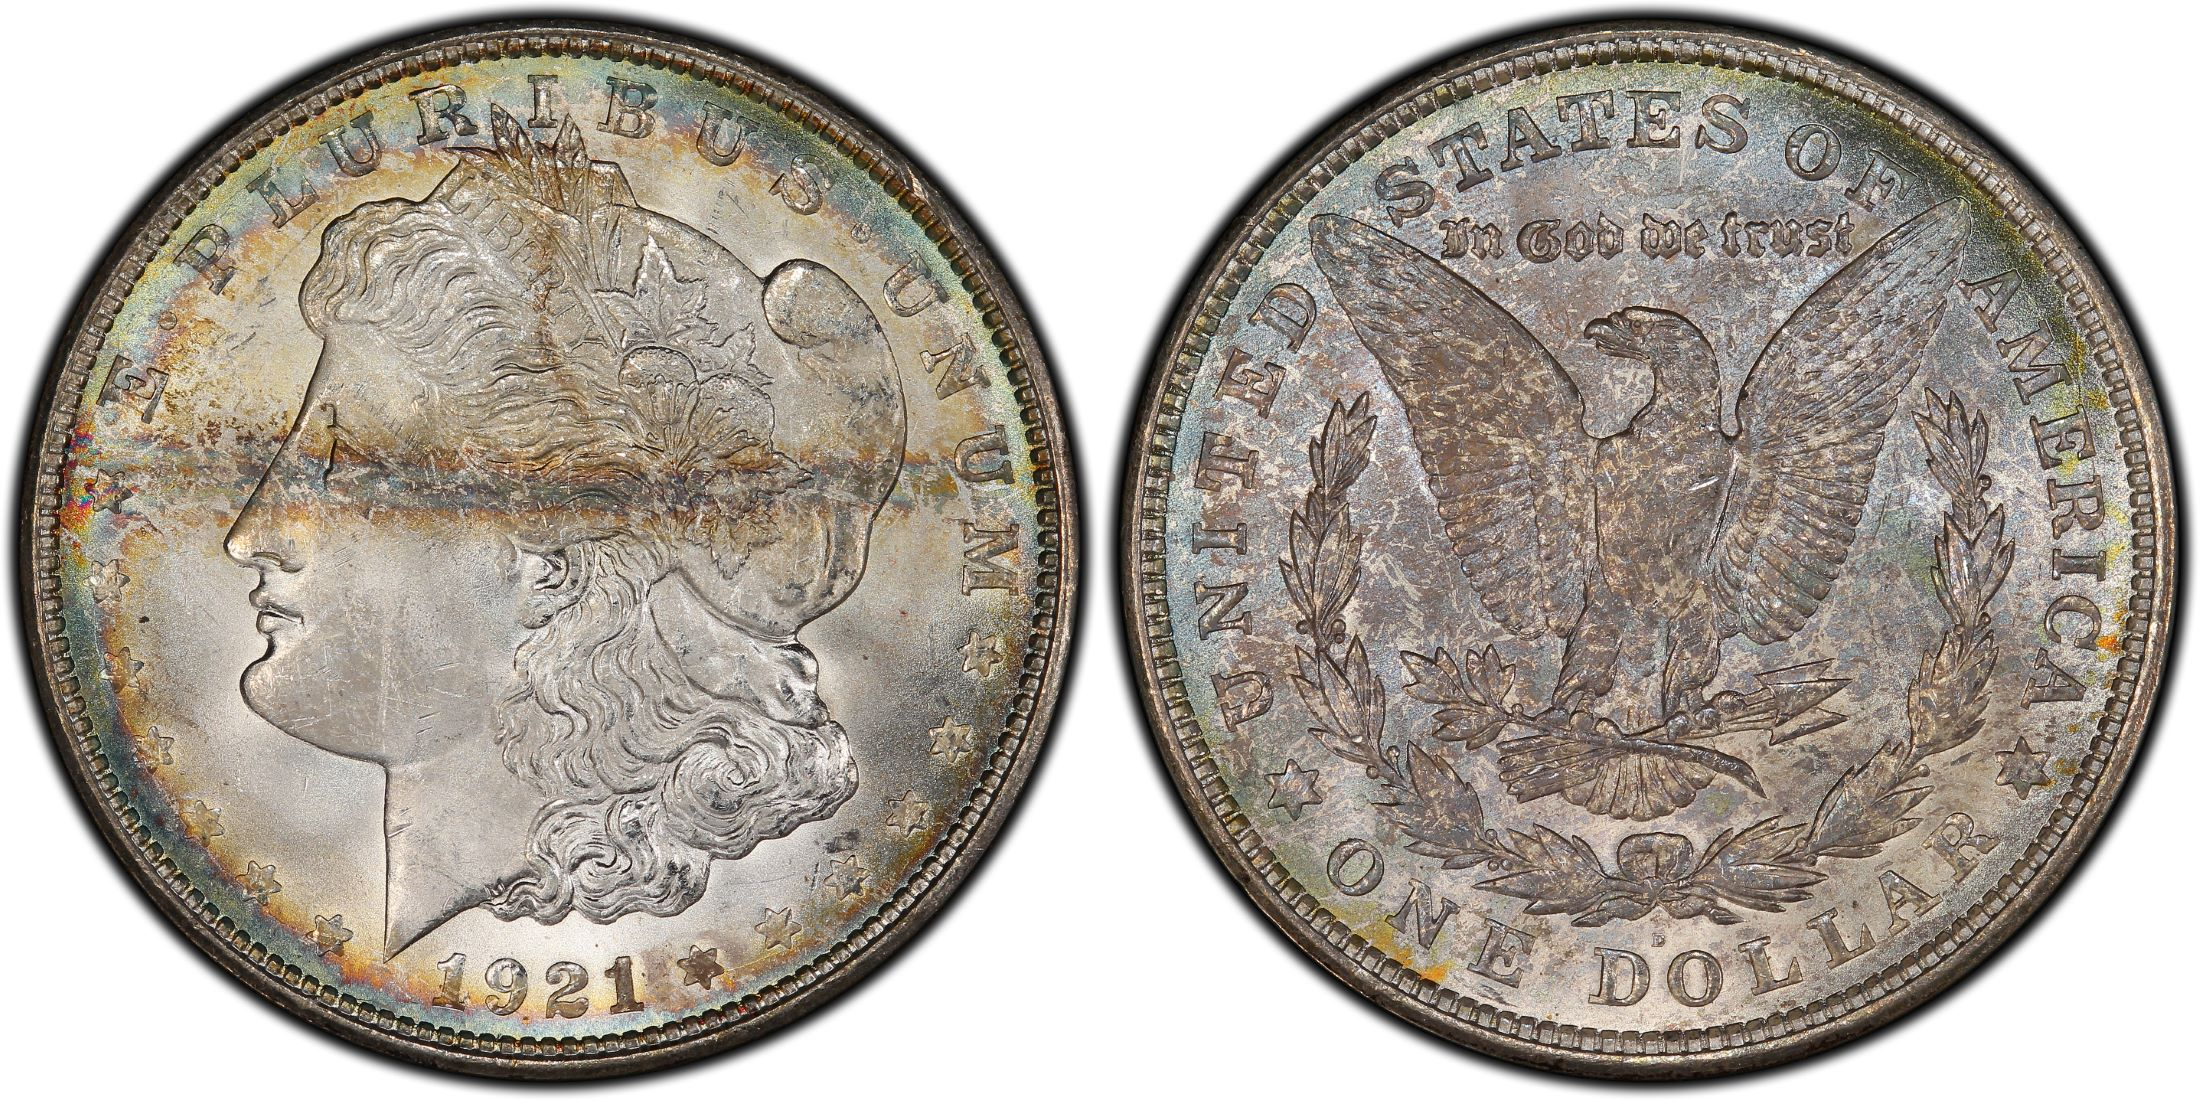 3 Different Mints  P O S Morgan Dollars MS63 NGC//PCGS Certified  1878-1904